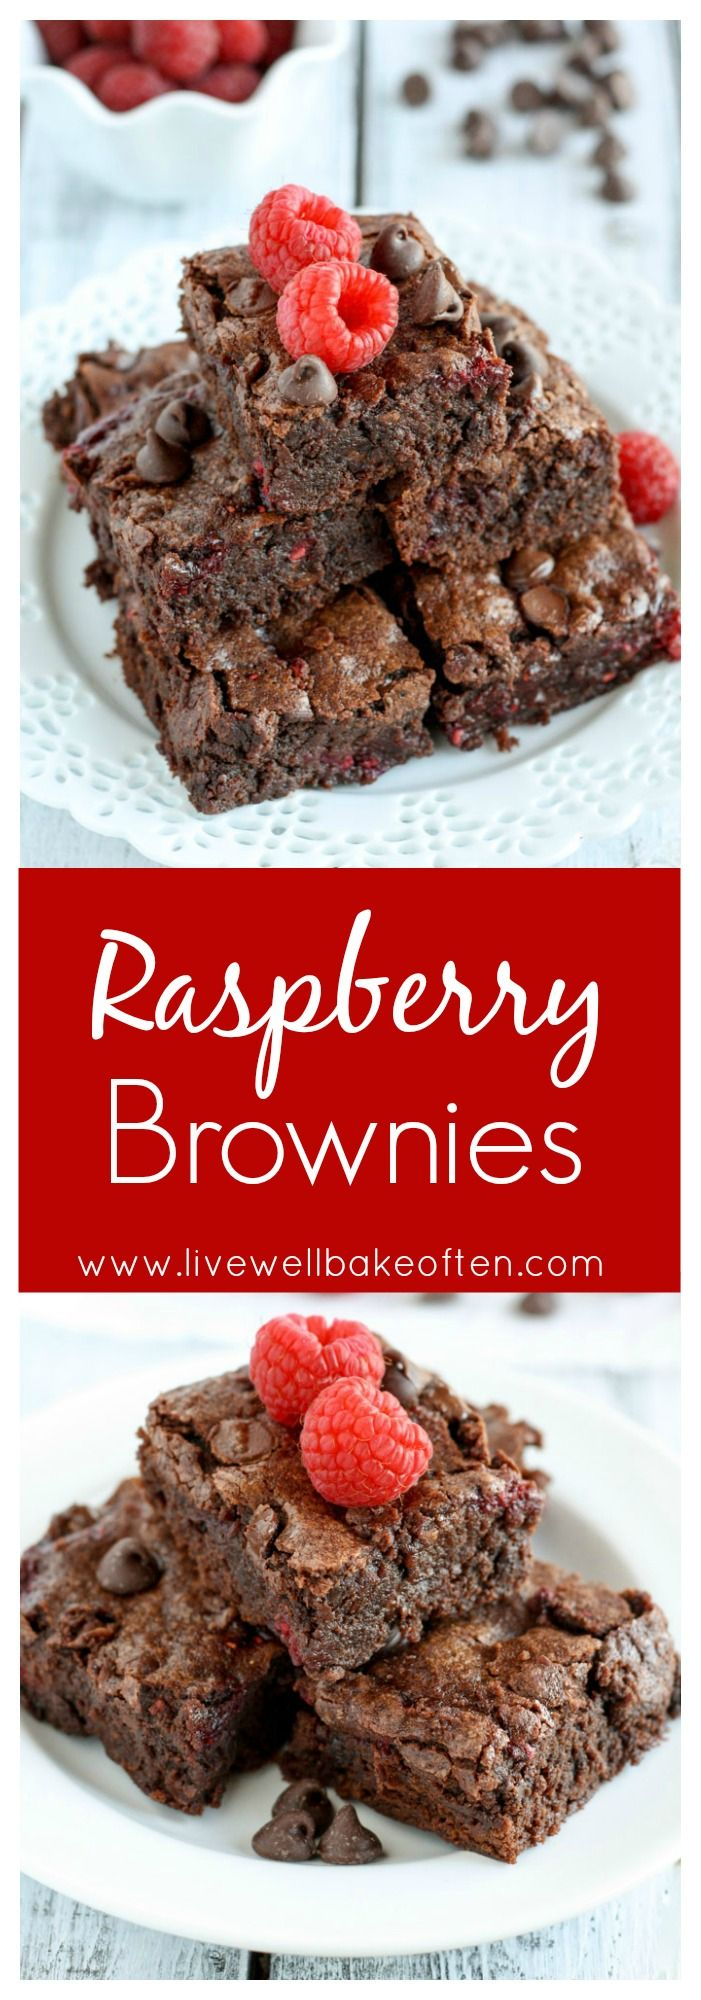 An easy and fudgy one bowl brownie recipe filled with fresh raspberries and chocolate!